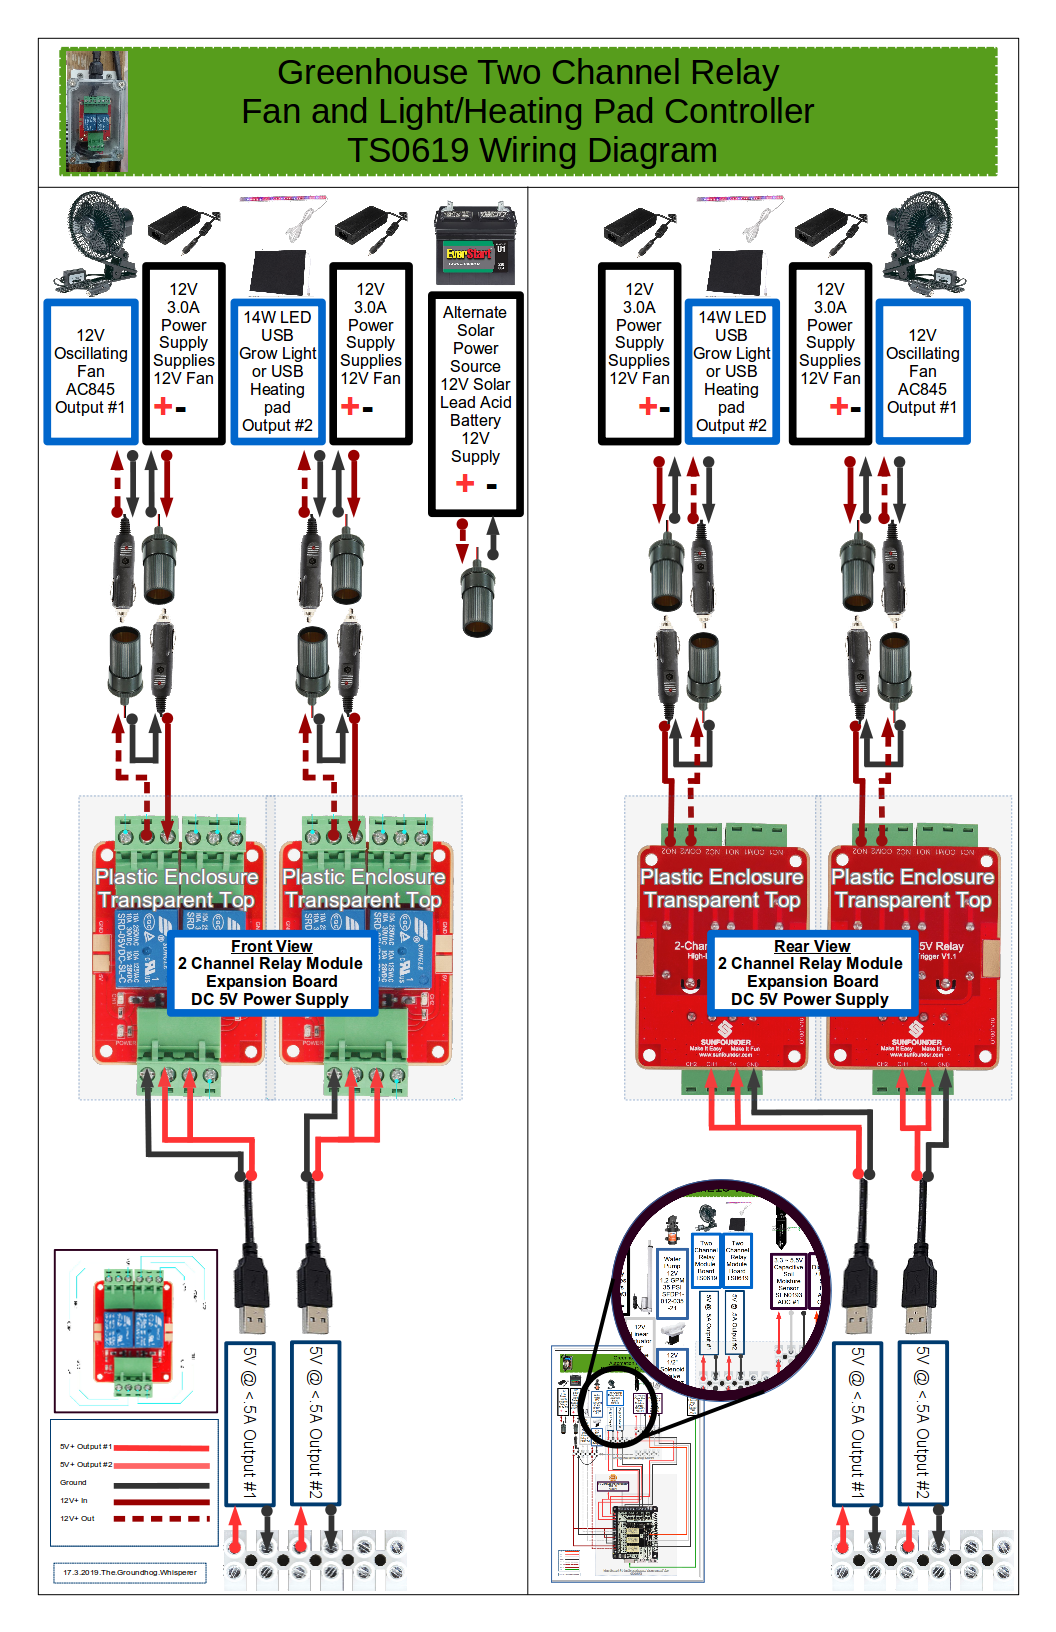 Wiring Diagram For Greenhouse